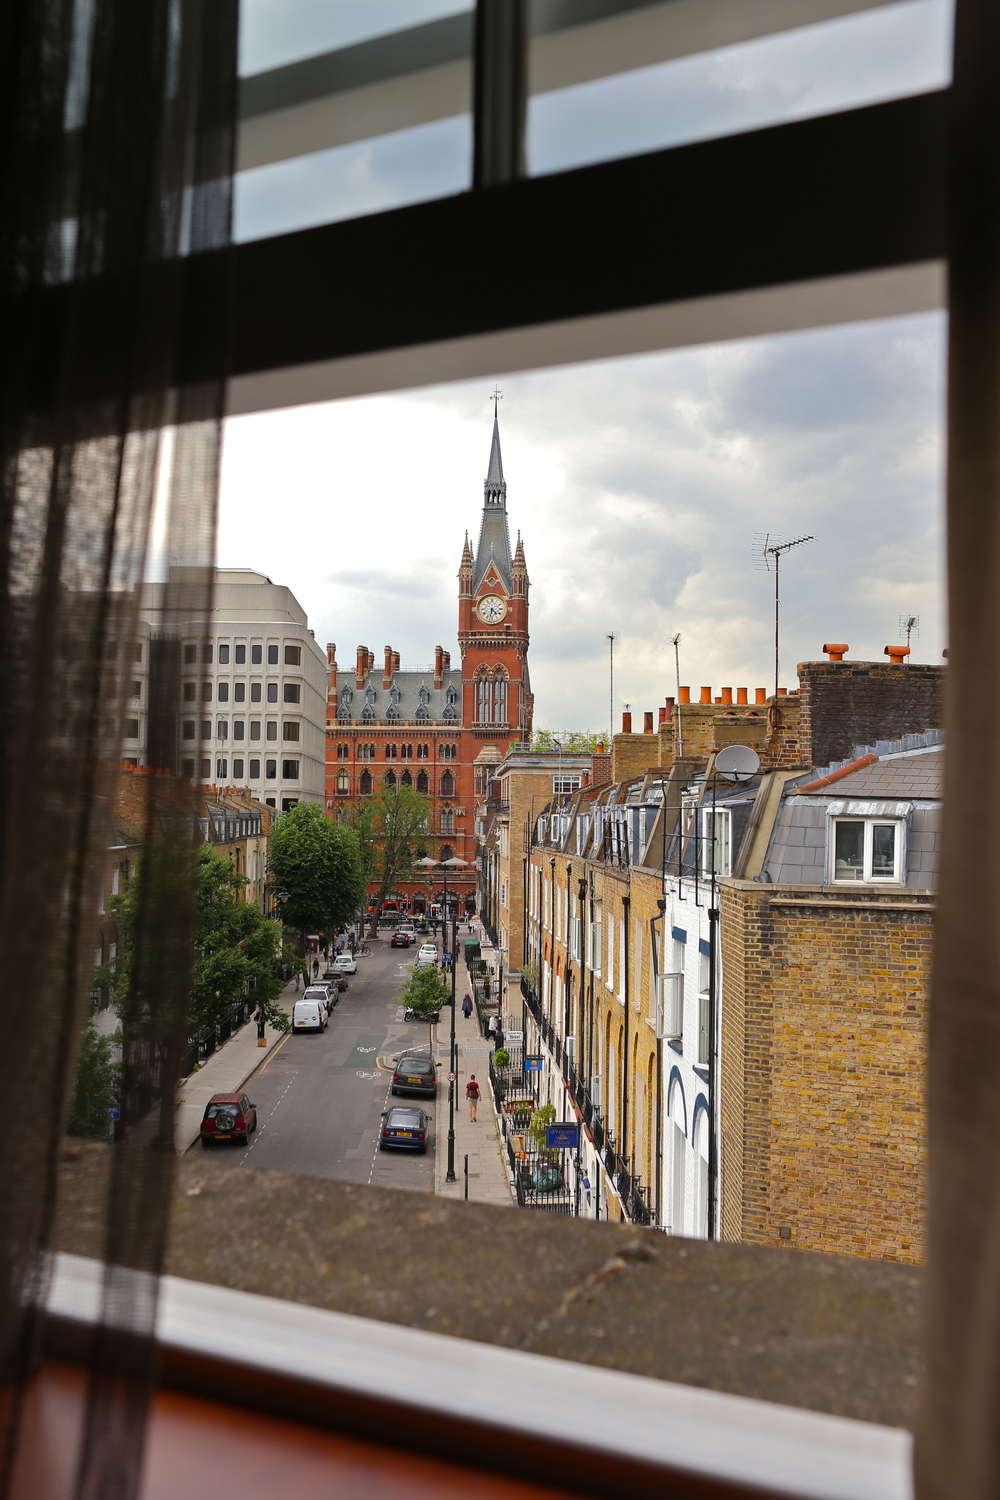 The view from my teeny tiny hotel room. When traveling, I usually go for whatever is cheap, minimal, and in a prime location. I stayed right near Kings Cross St. Pancras (that building you see is the St. Pancras station) which I would highly recommend! It's a safe and affordable area, with lots of cafes and shops nearby. It's also extremely central.